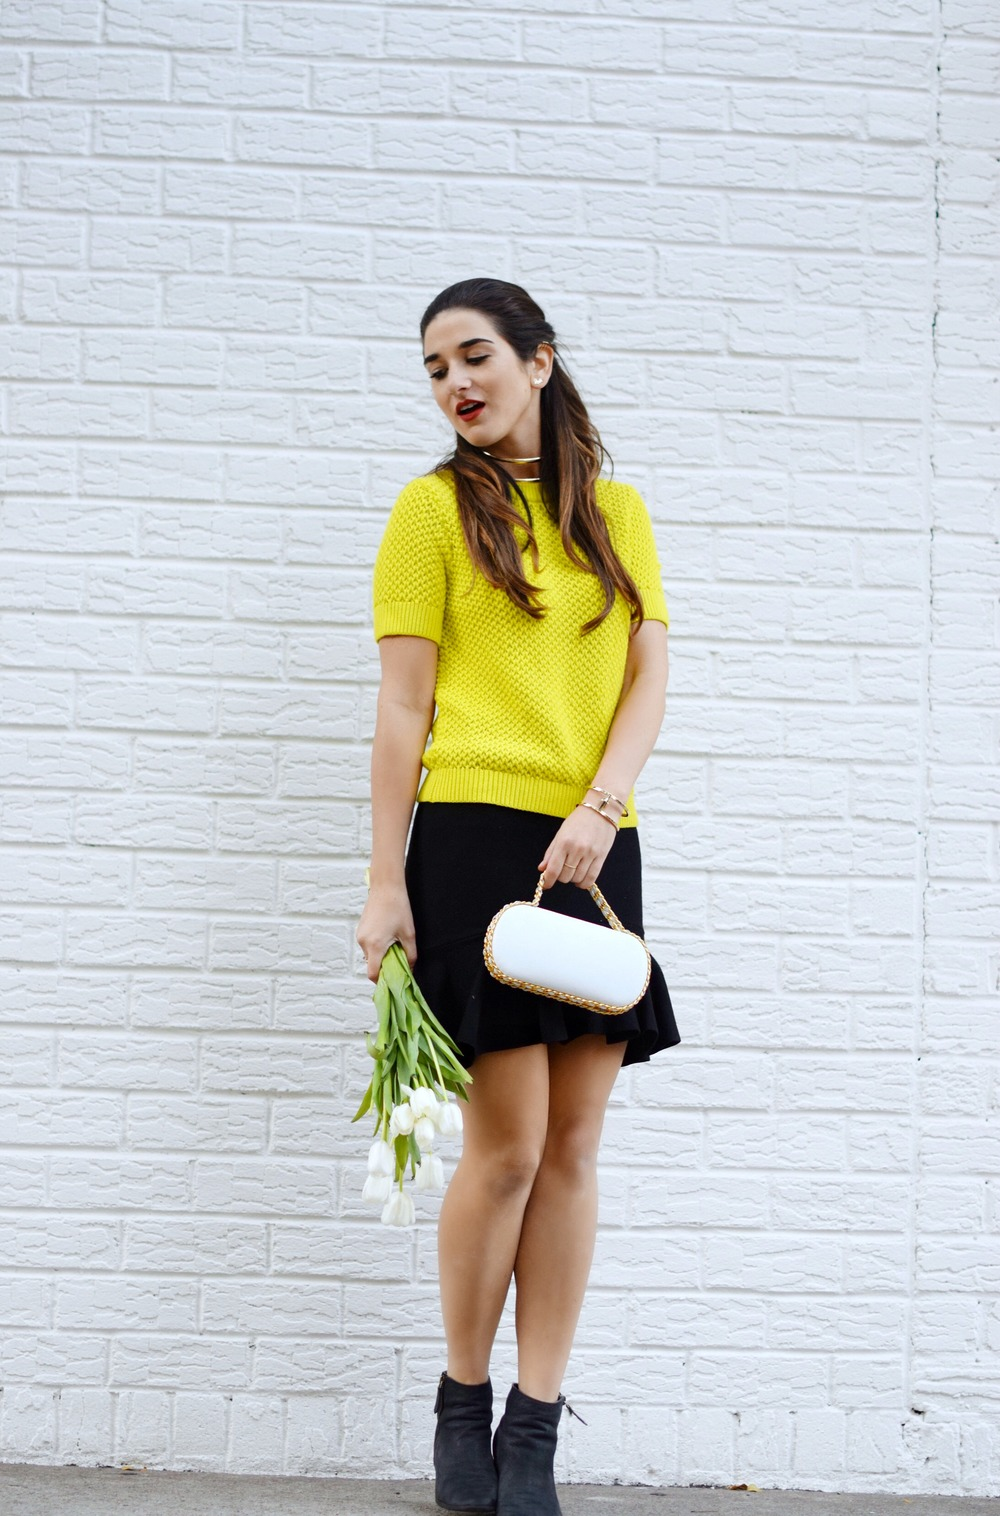 White Prince Minaudiere Erin Dana Louboutins & Love Fashion Blog Esther Santer NYC Street Style Blogger Bag Giveaway Gold Jewelry Lydell Bracelet Collar Necklace Black Booties Flared Ruffle Skirt Photoshoot Model Club Monaco Neon Yellow Sweater Outfit.jpg